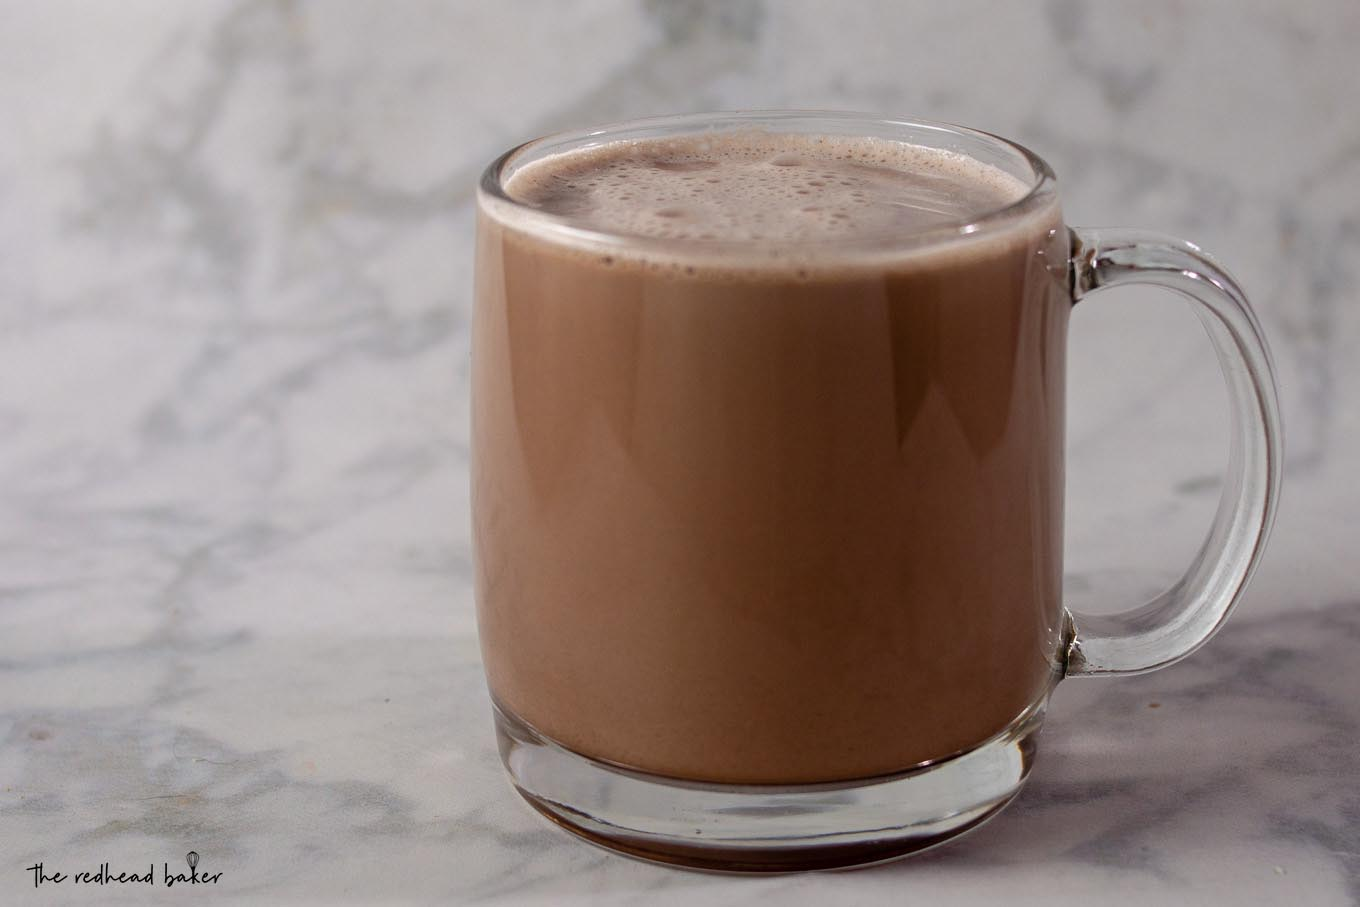 A mug of creamy hot chocolate